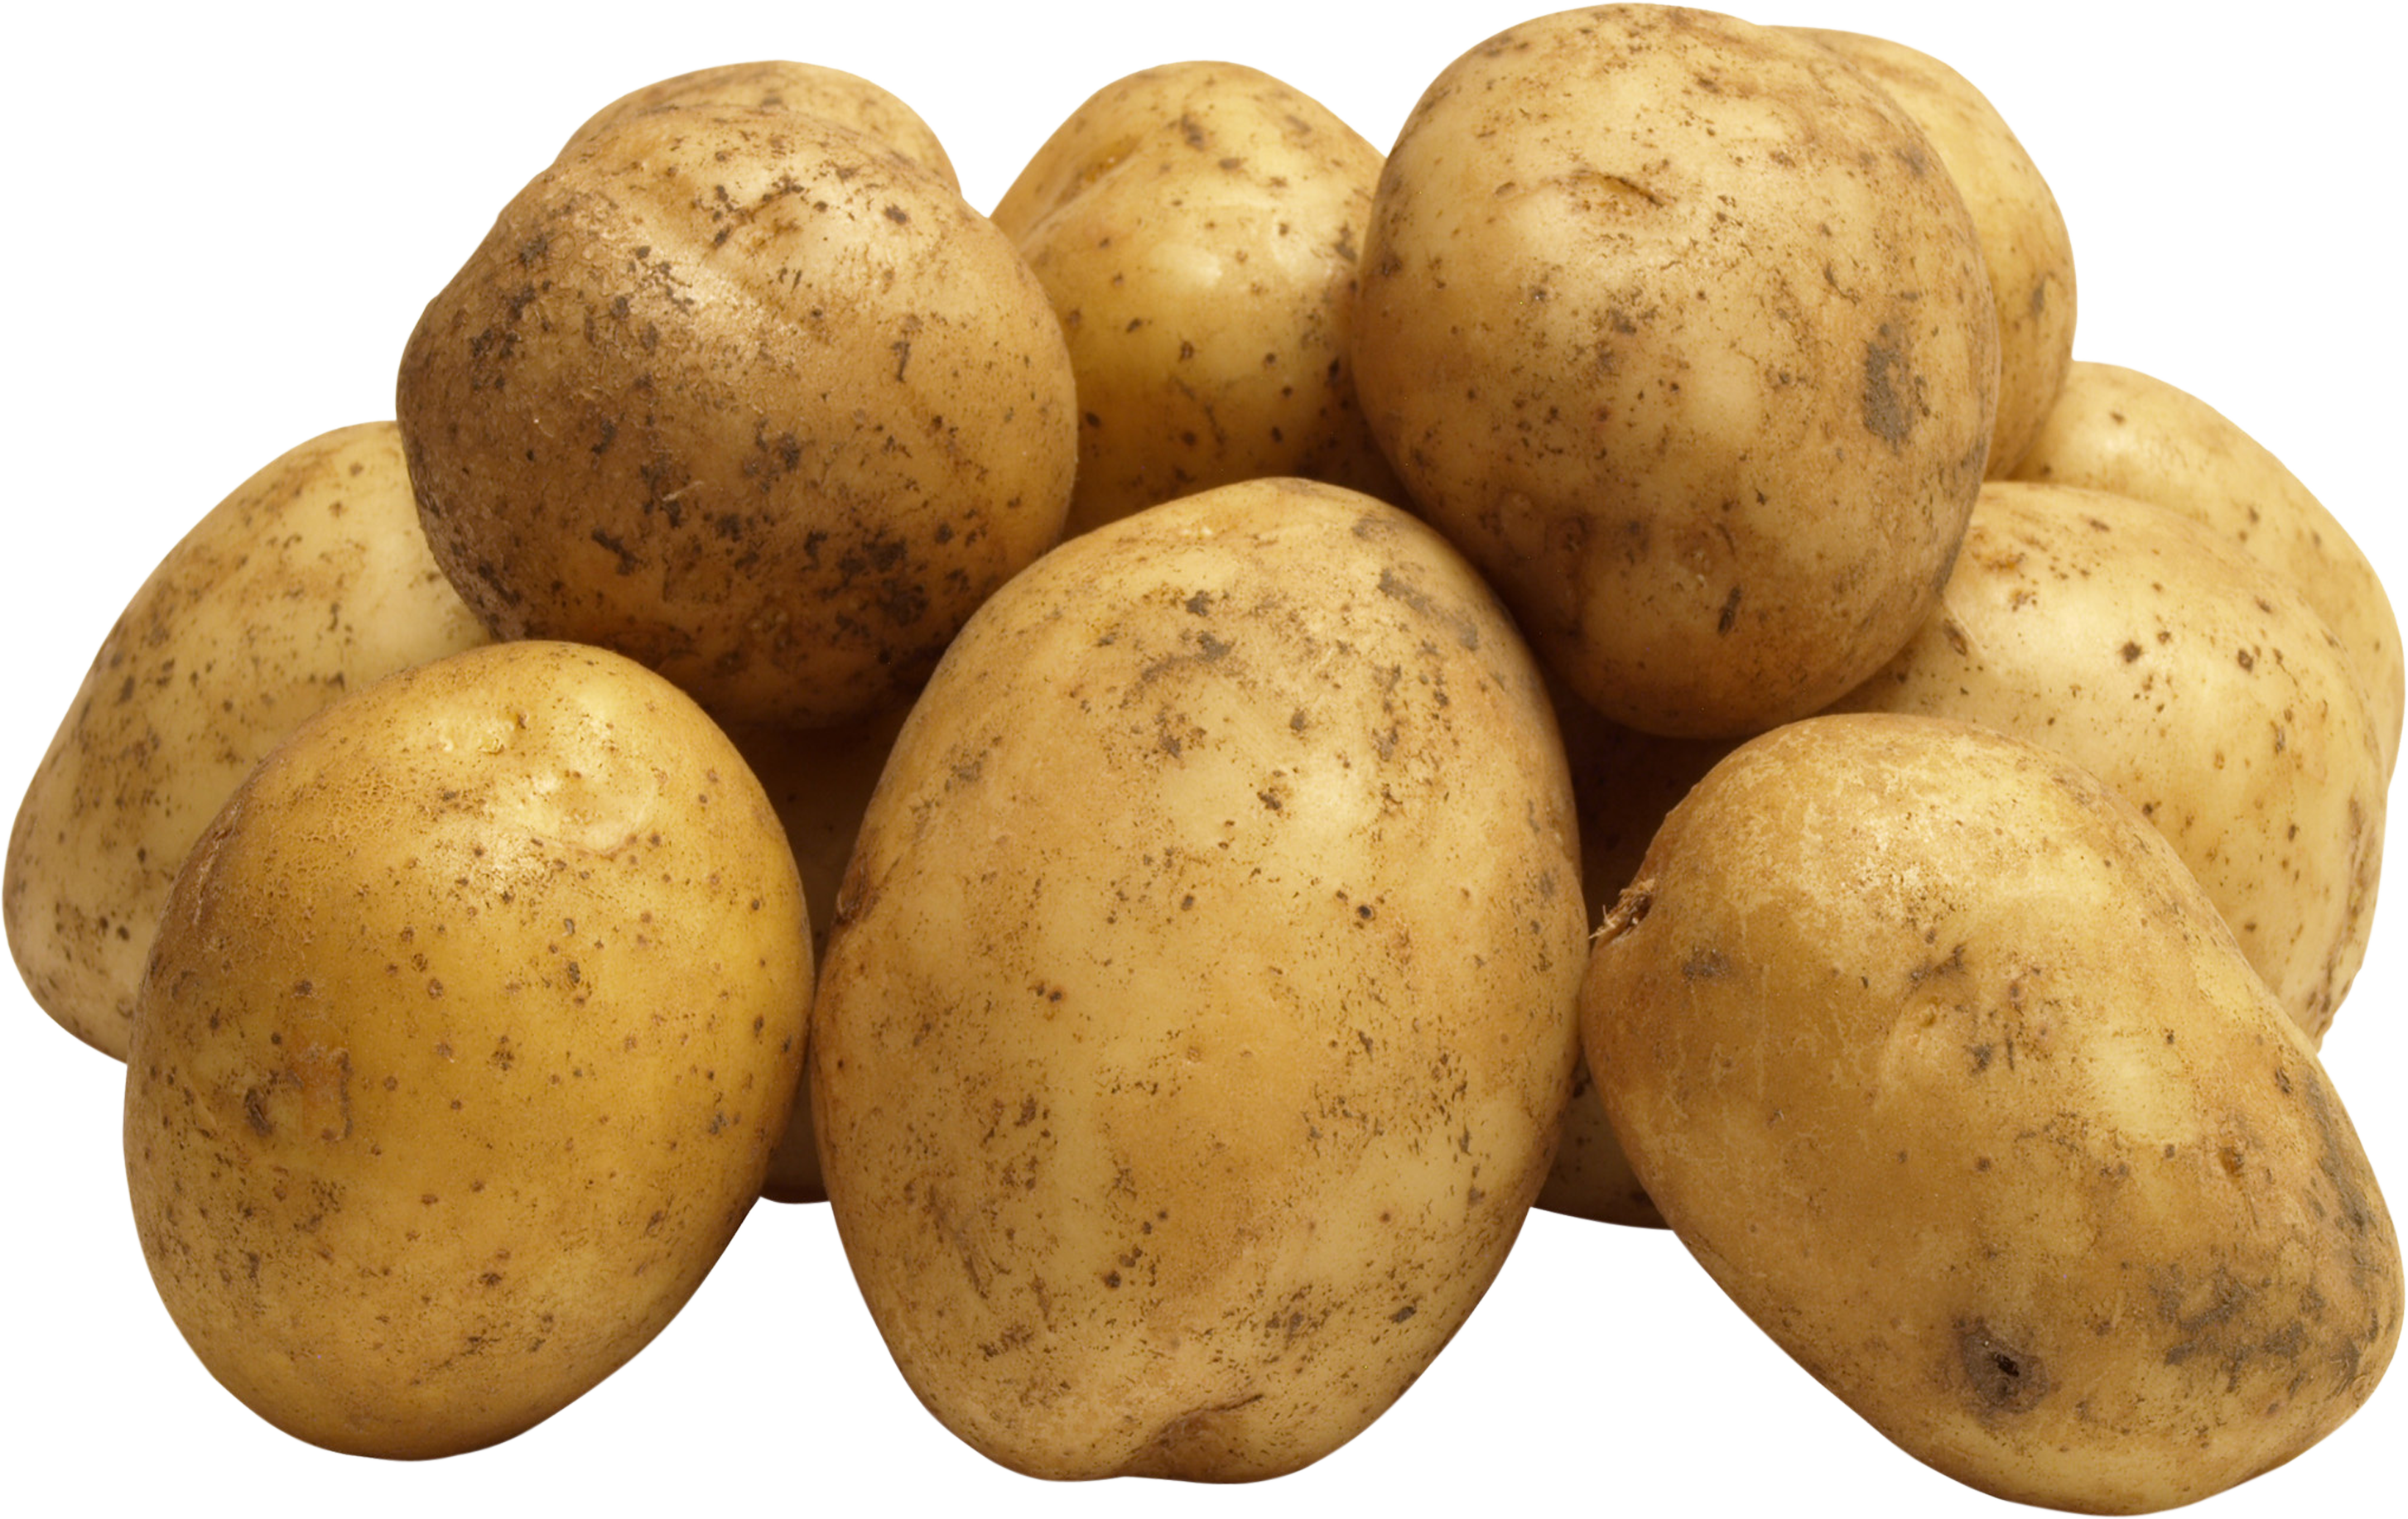 Image free picture images. Potato png image black and white